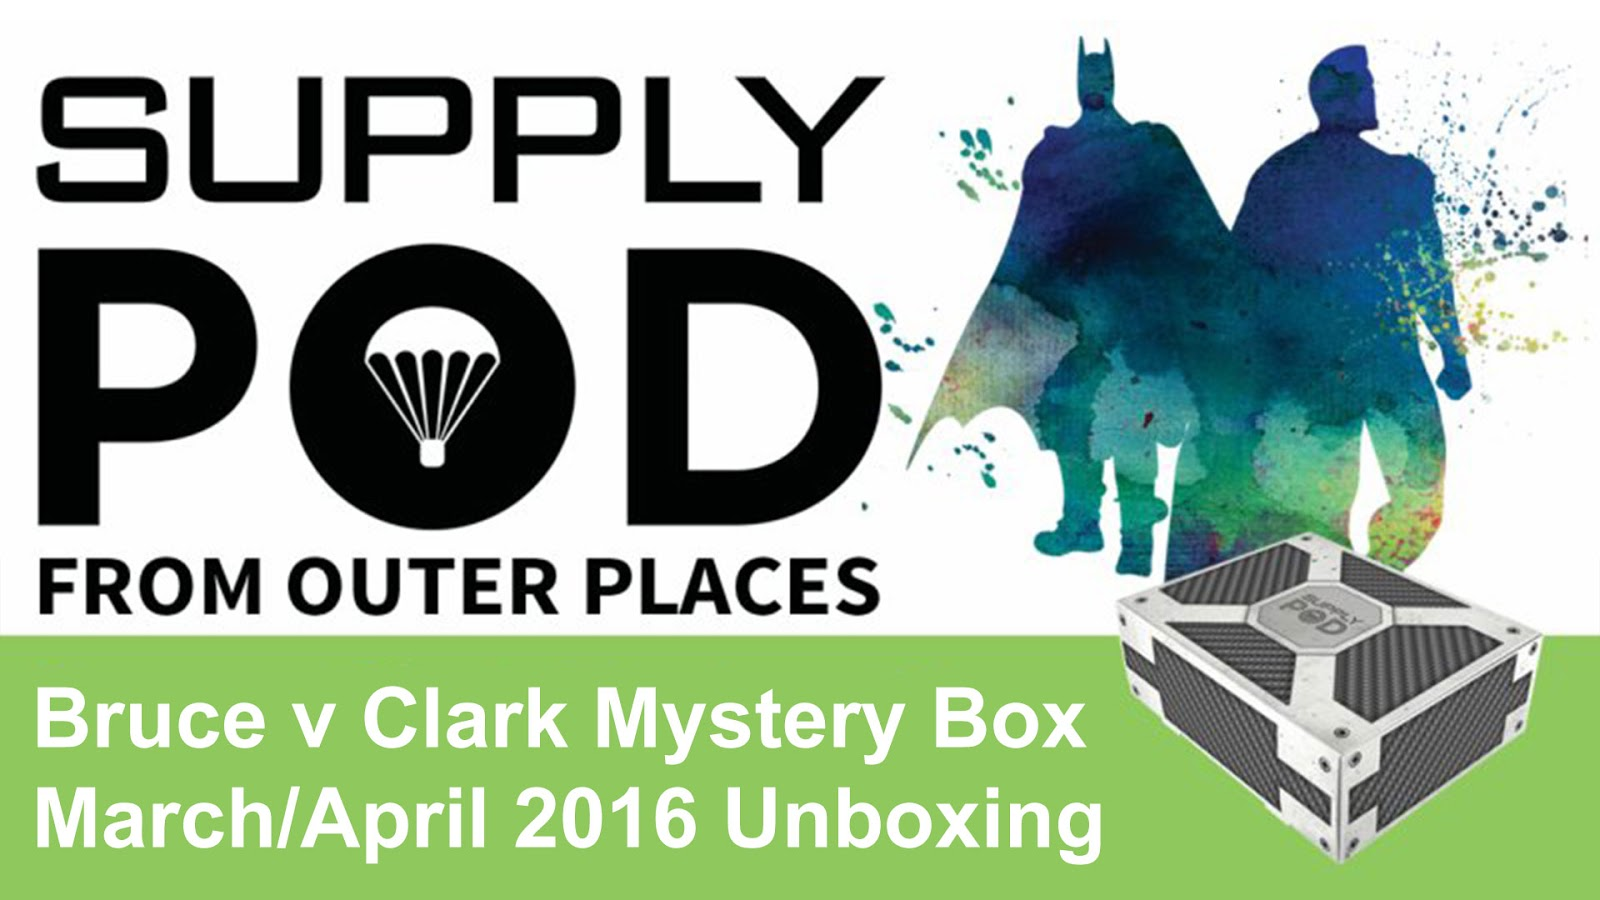 Unboxing Supply Pod Outer Places Bruce v Clark Edition March April 2016 box